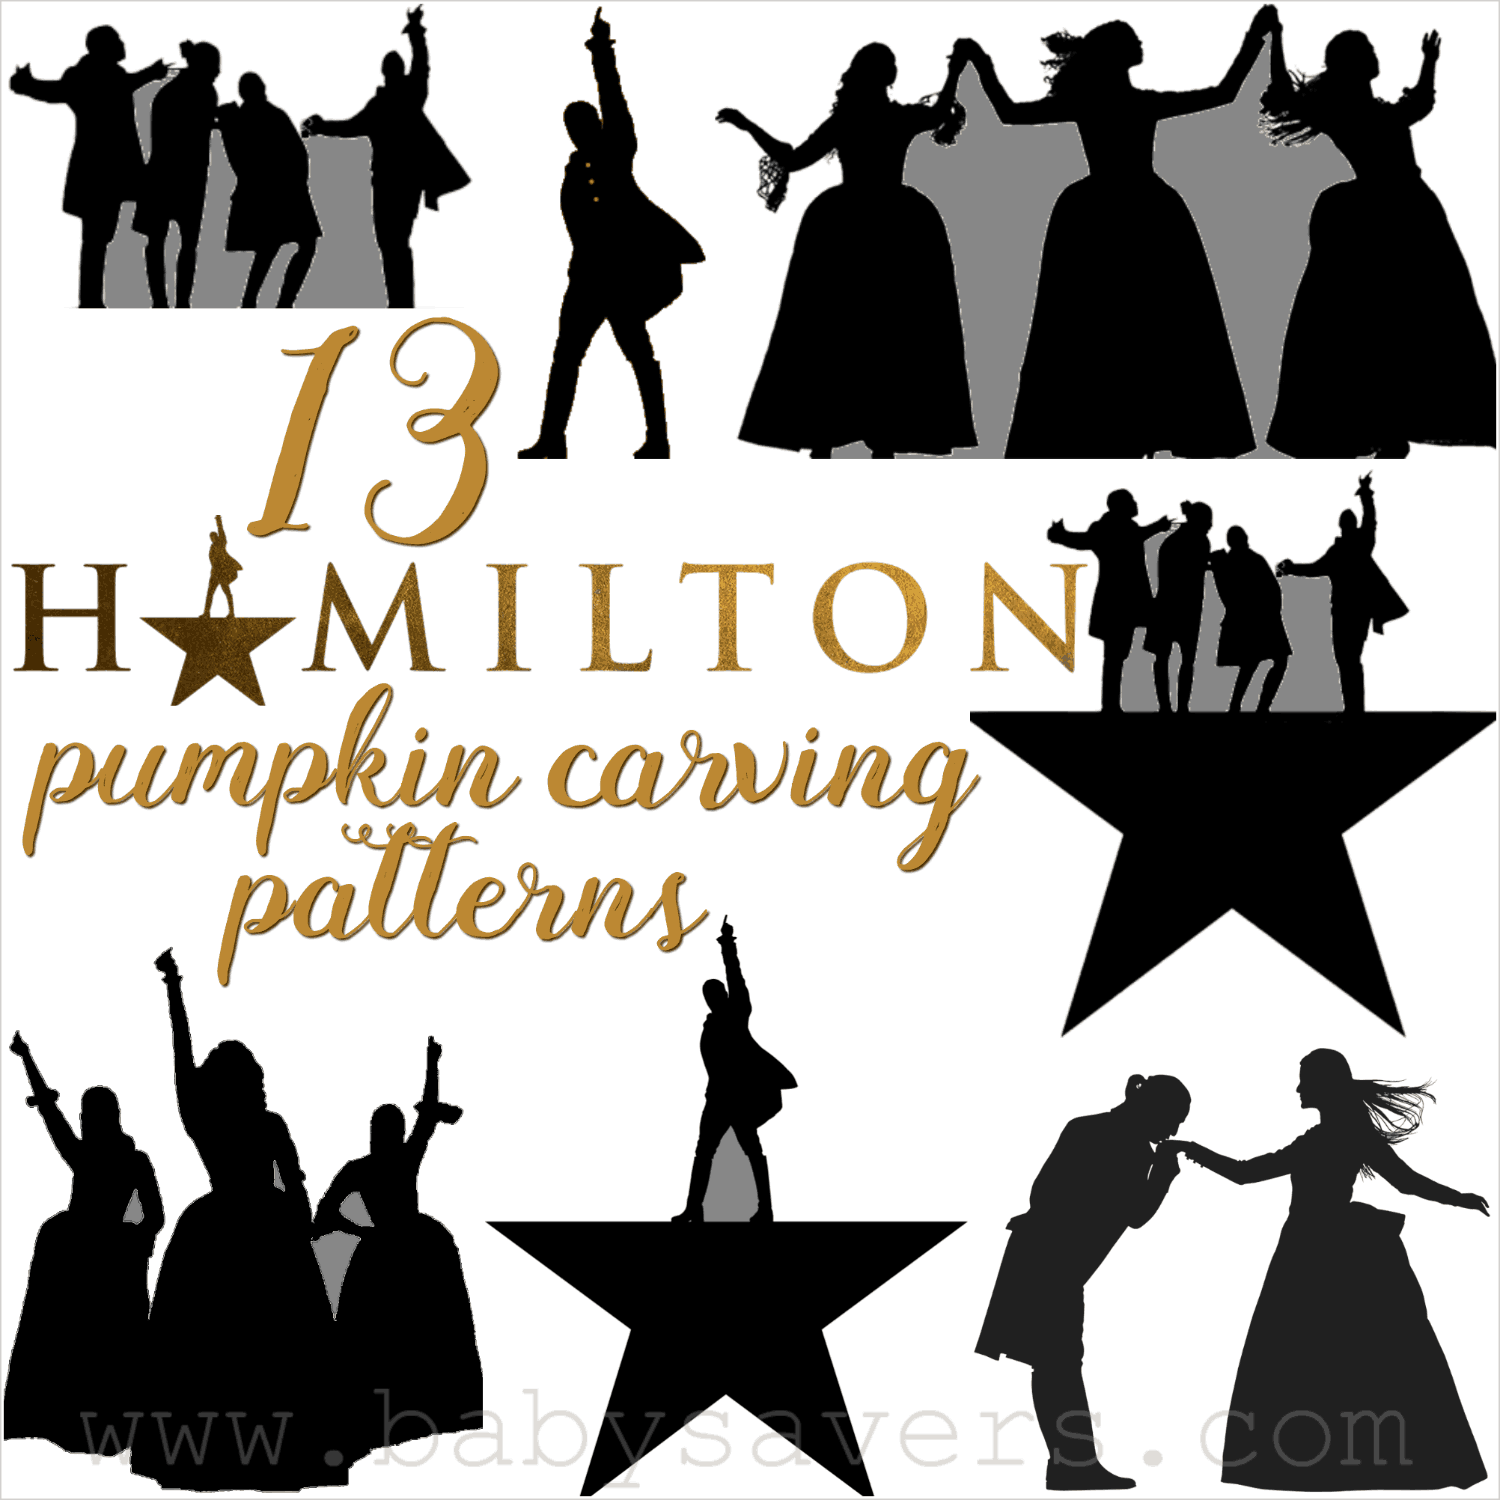 photograph about Pumpkin Outlines Printable known as 13 Hamilton Pumpkin Carving Designs and Printable Stencils